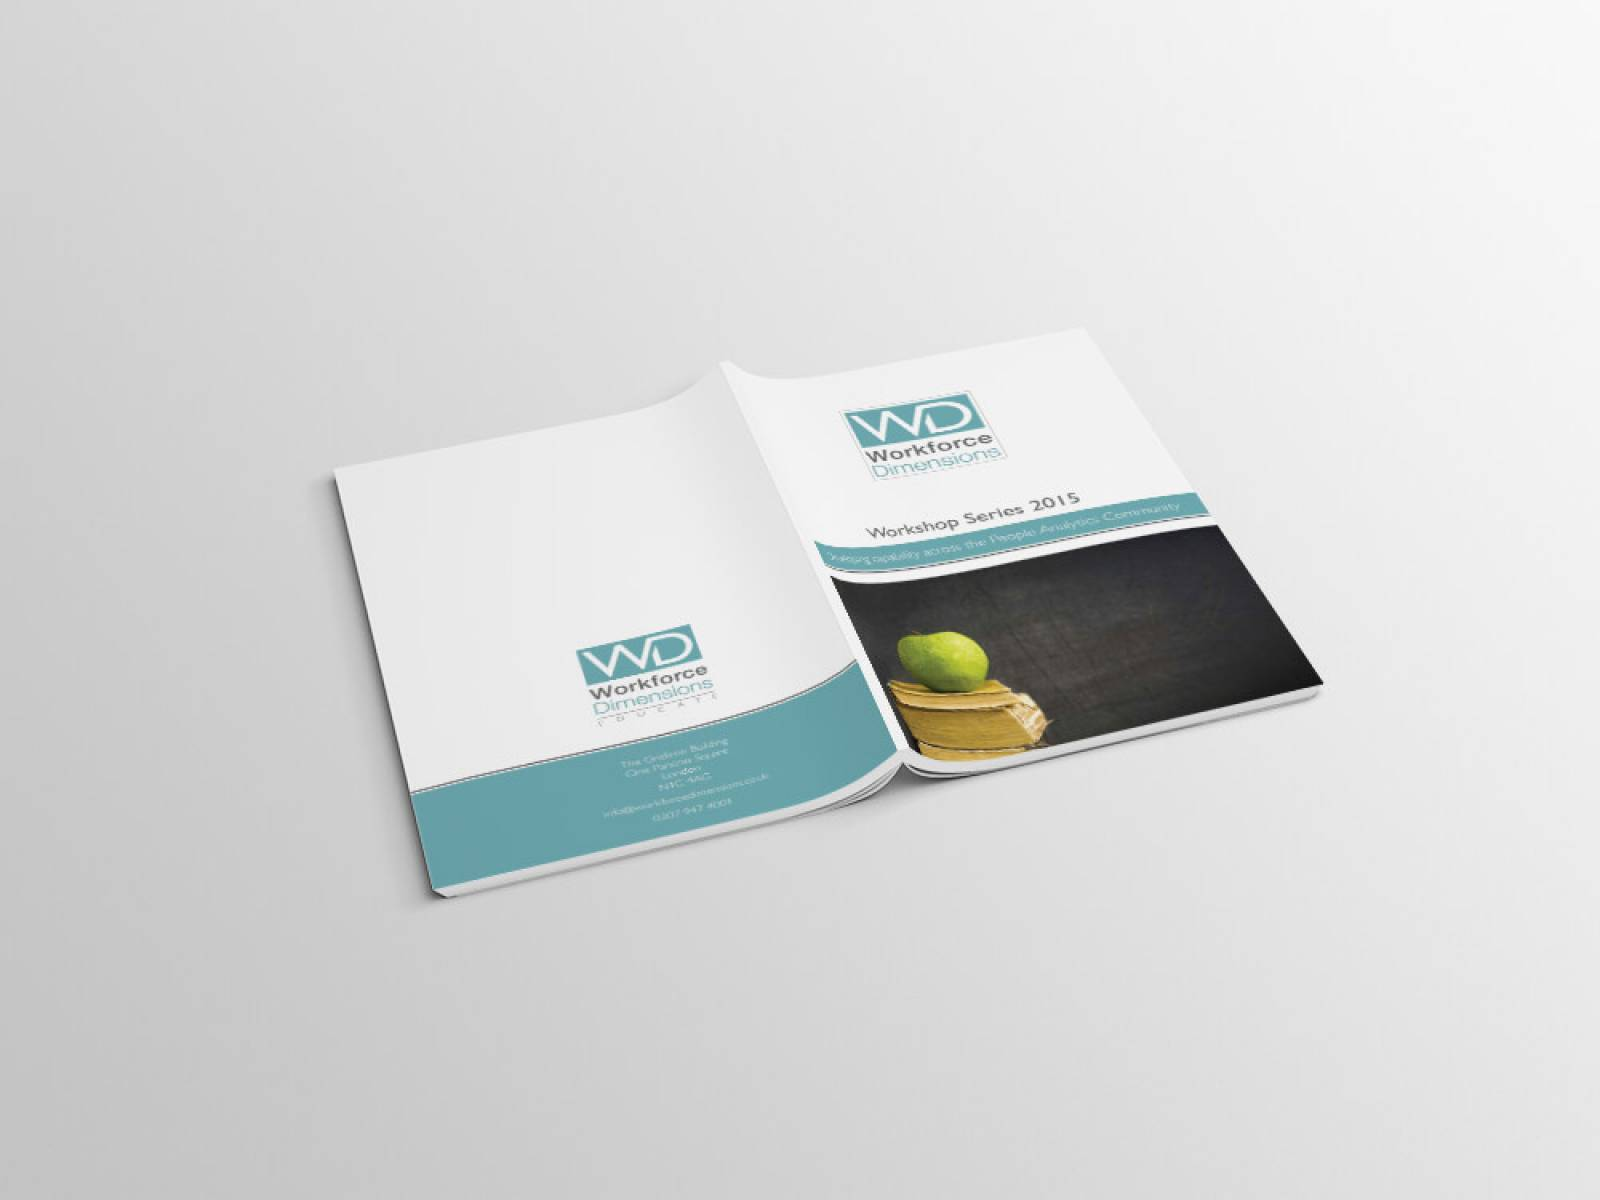 Workforce-dimensions-flyer-4-design-agency-graphic-design-canterbury.jpg